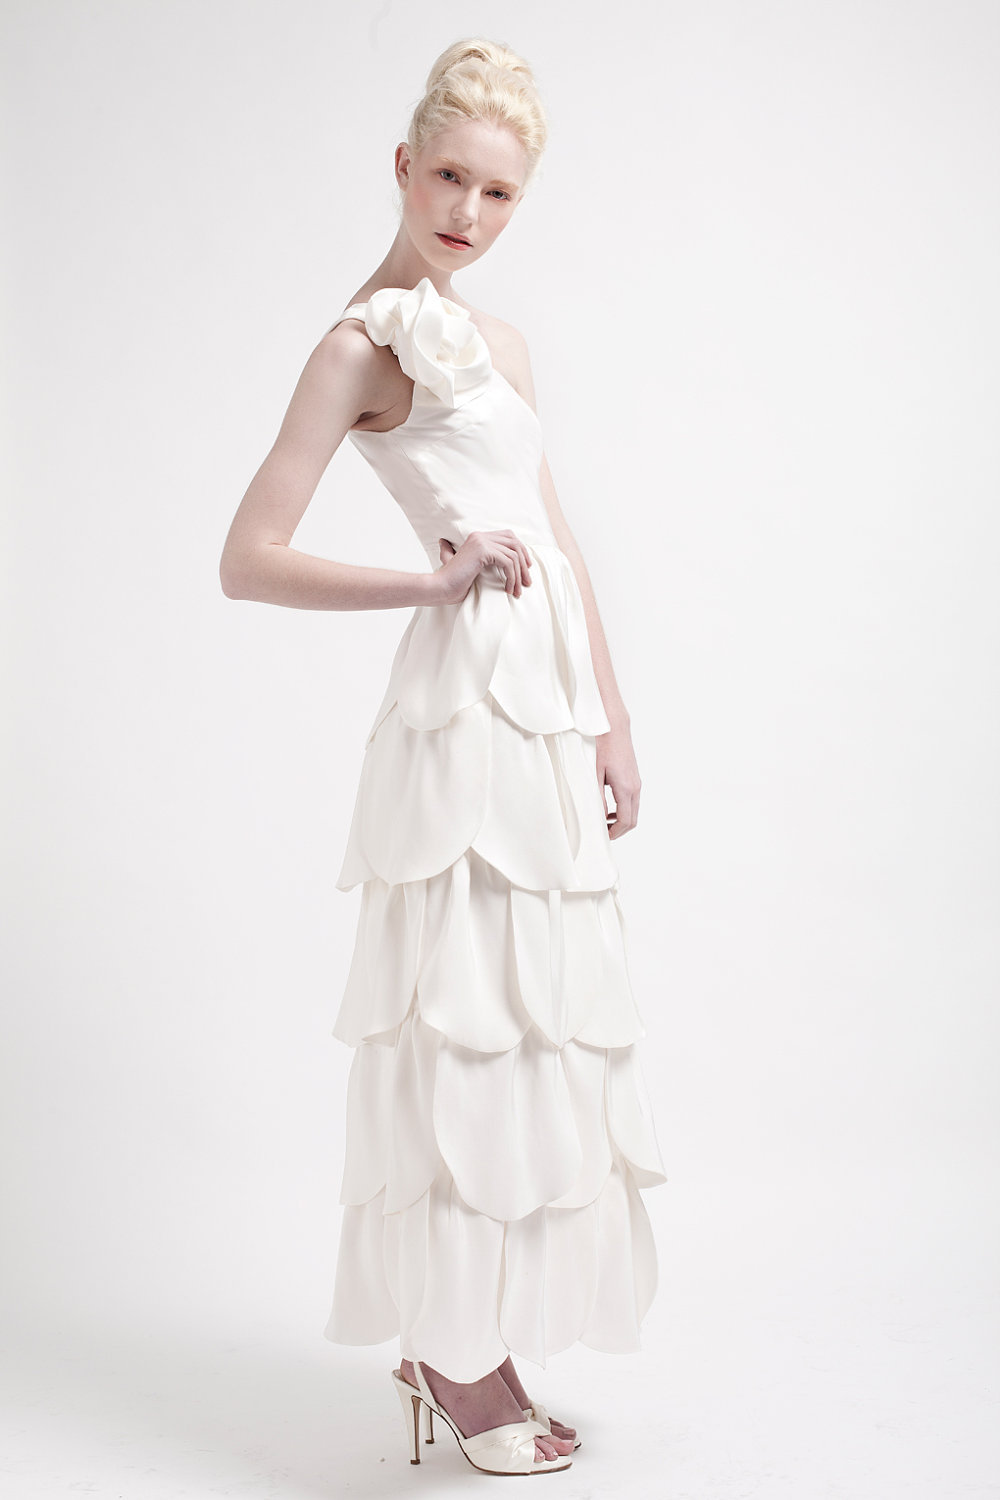 Handmade-wedding-dresses-bridal-designers-to-watch-kelsey-genna-begonia.full